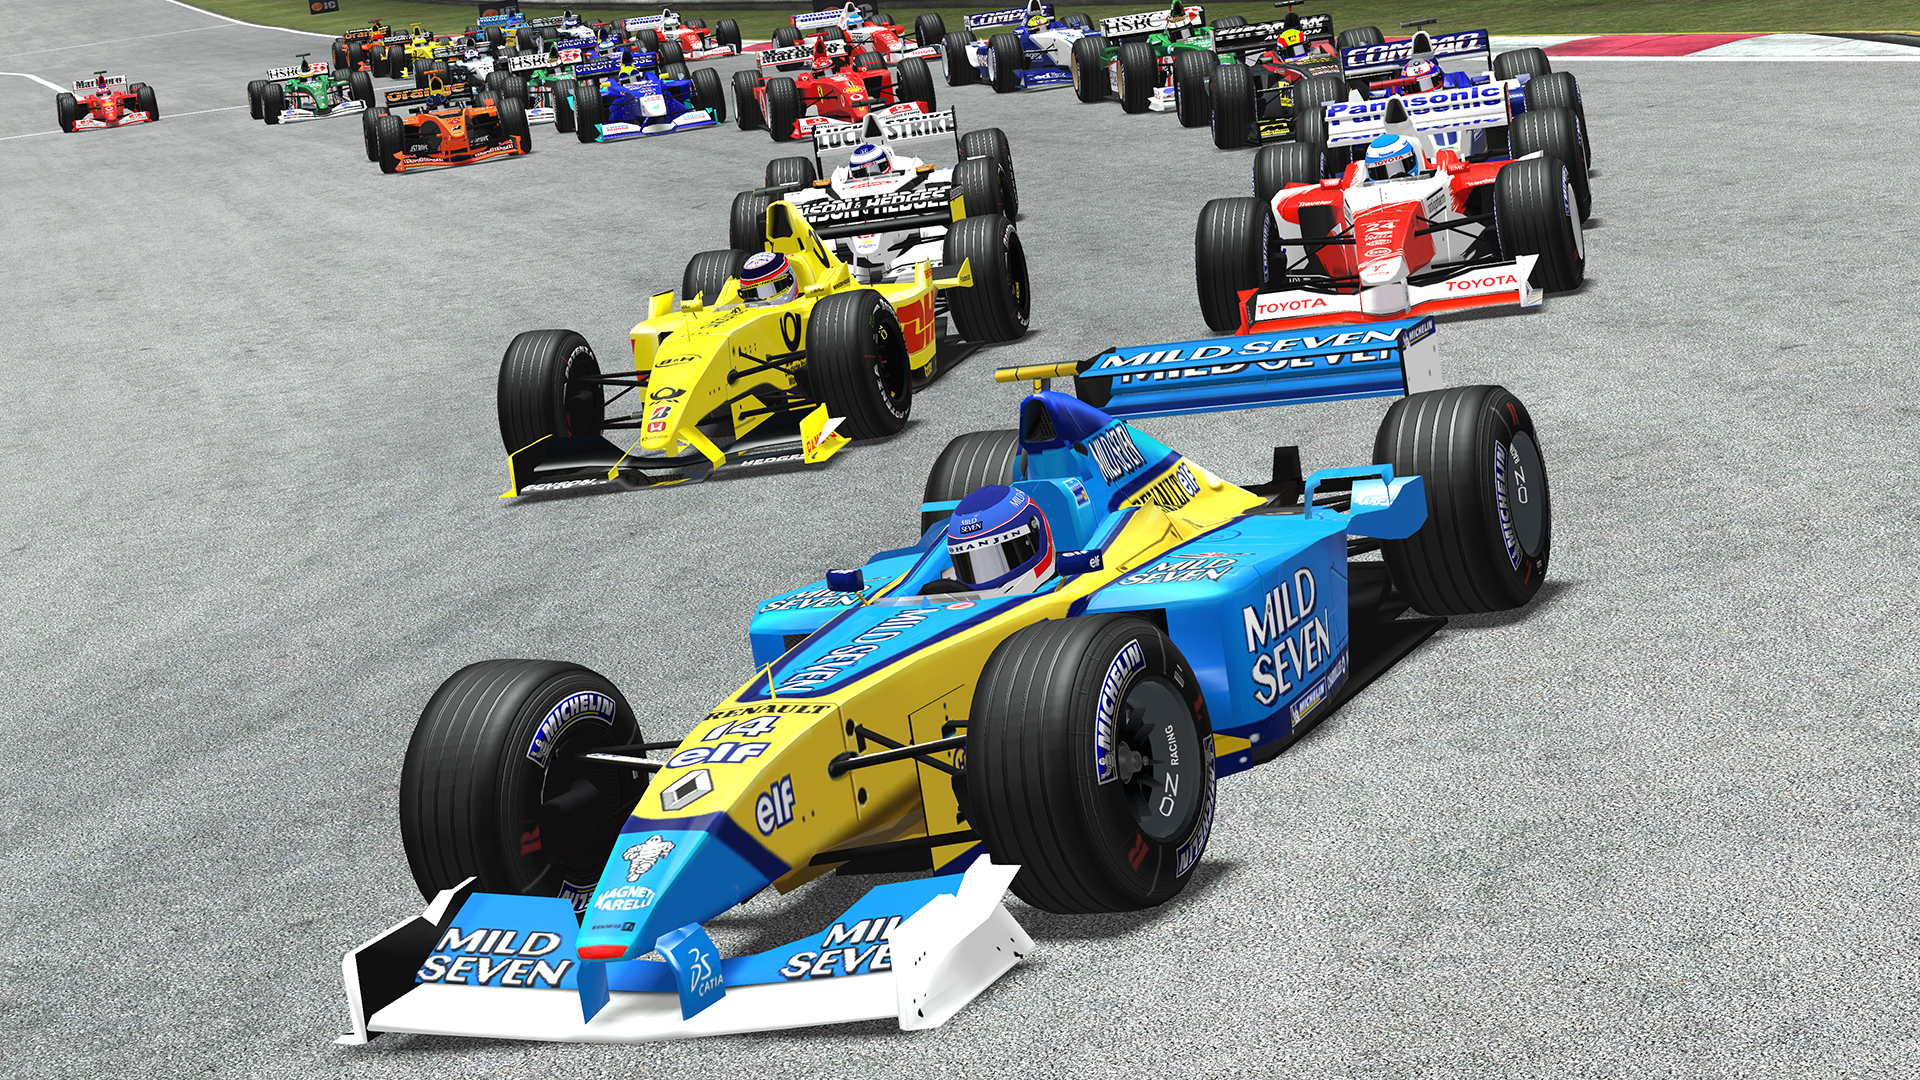 REL] - F1 2002 Conversion - Release v1 3 FINAL | Studio-397 Forum